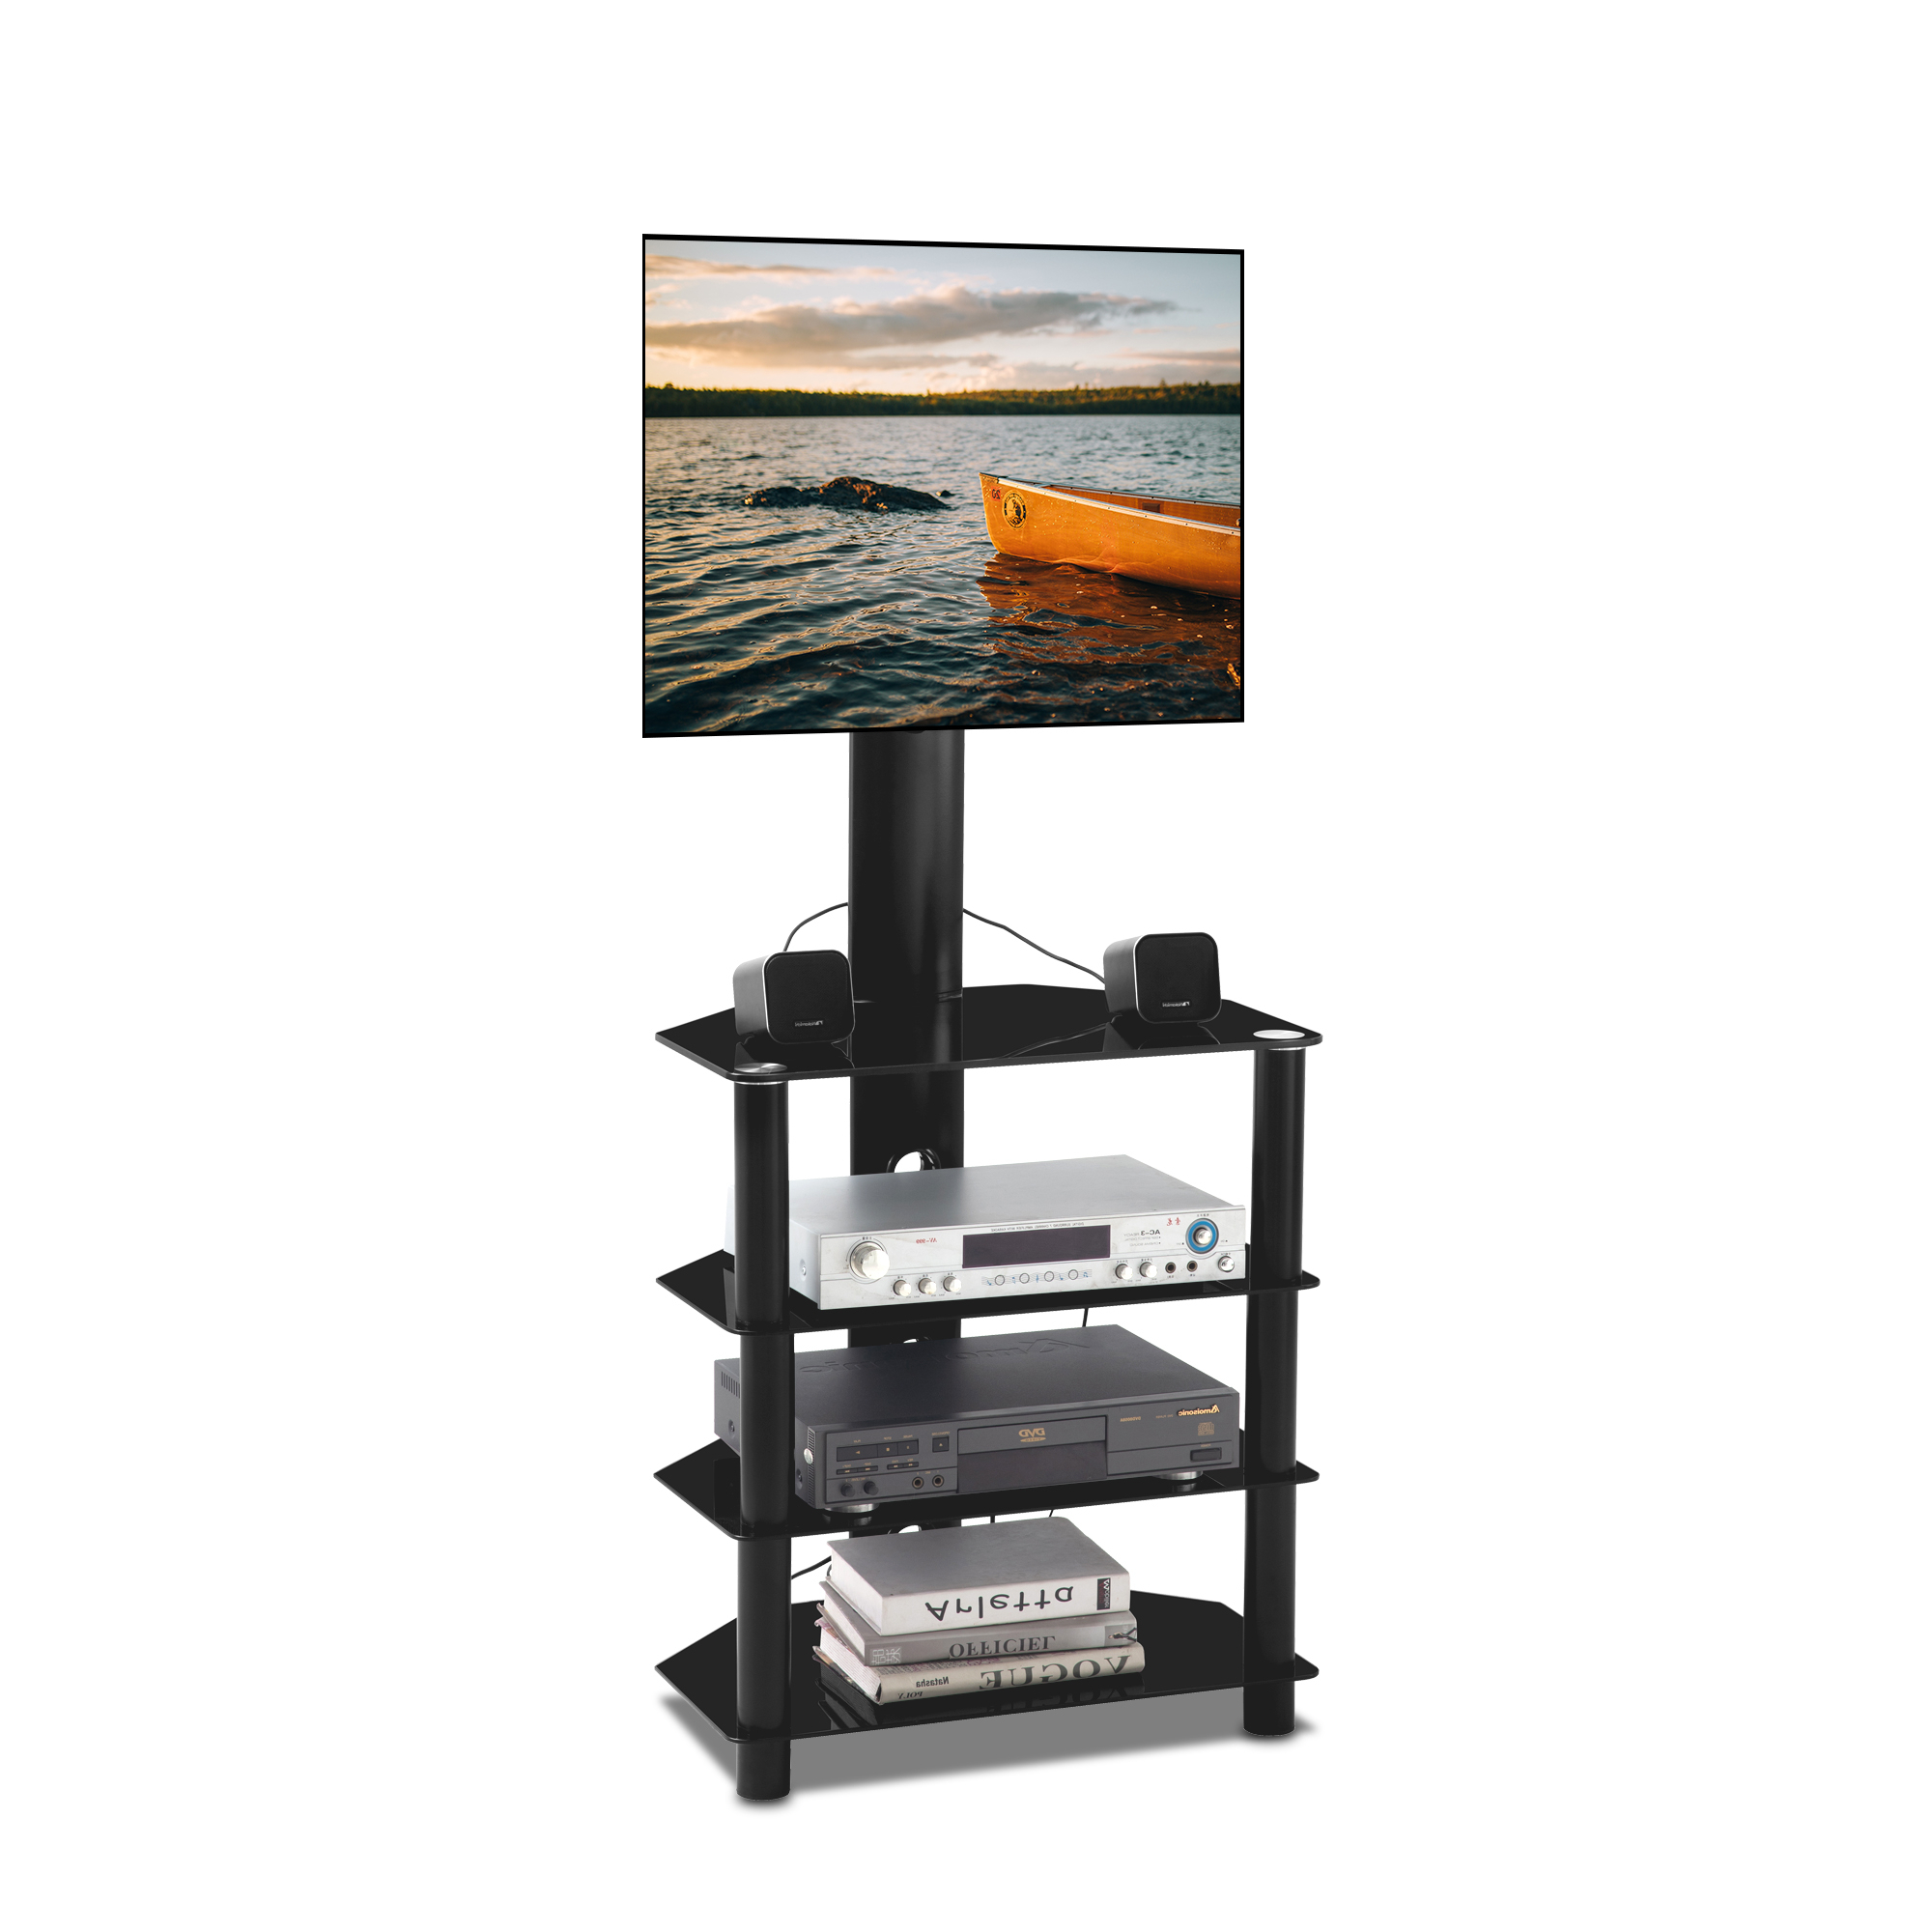 Tv Stand Base, Swivel Universal Tv Stand, Height And Angle Within Swivel Floor Tv Stands Height Adjustable (View 9 of 20)